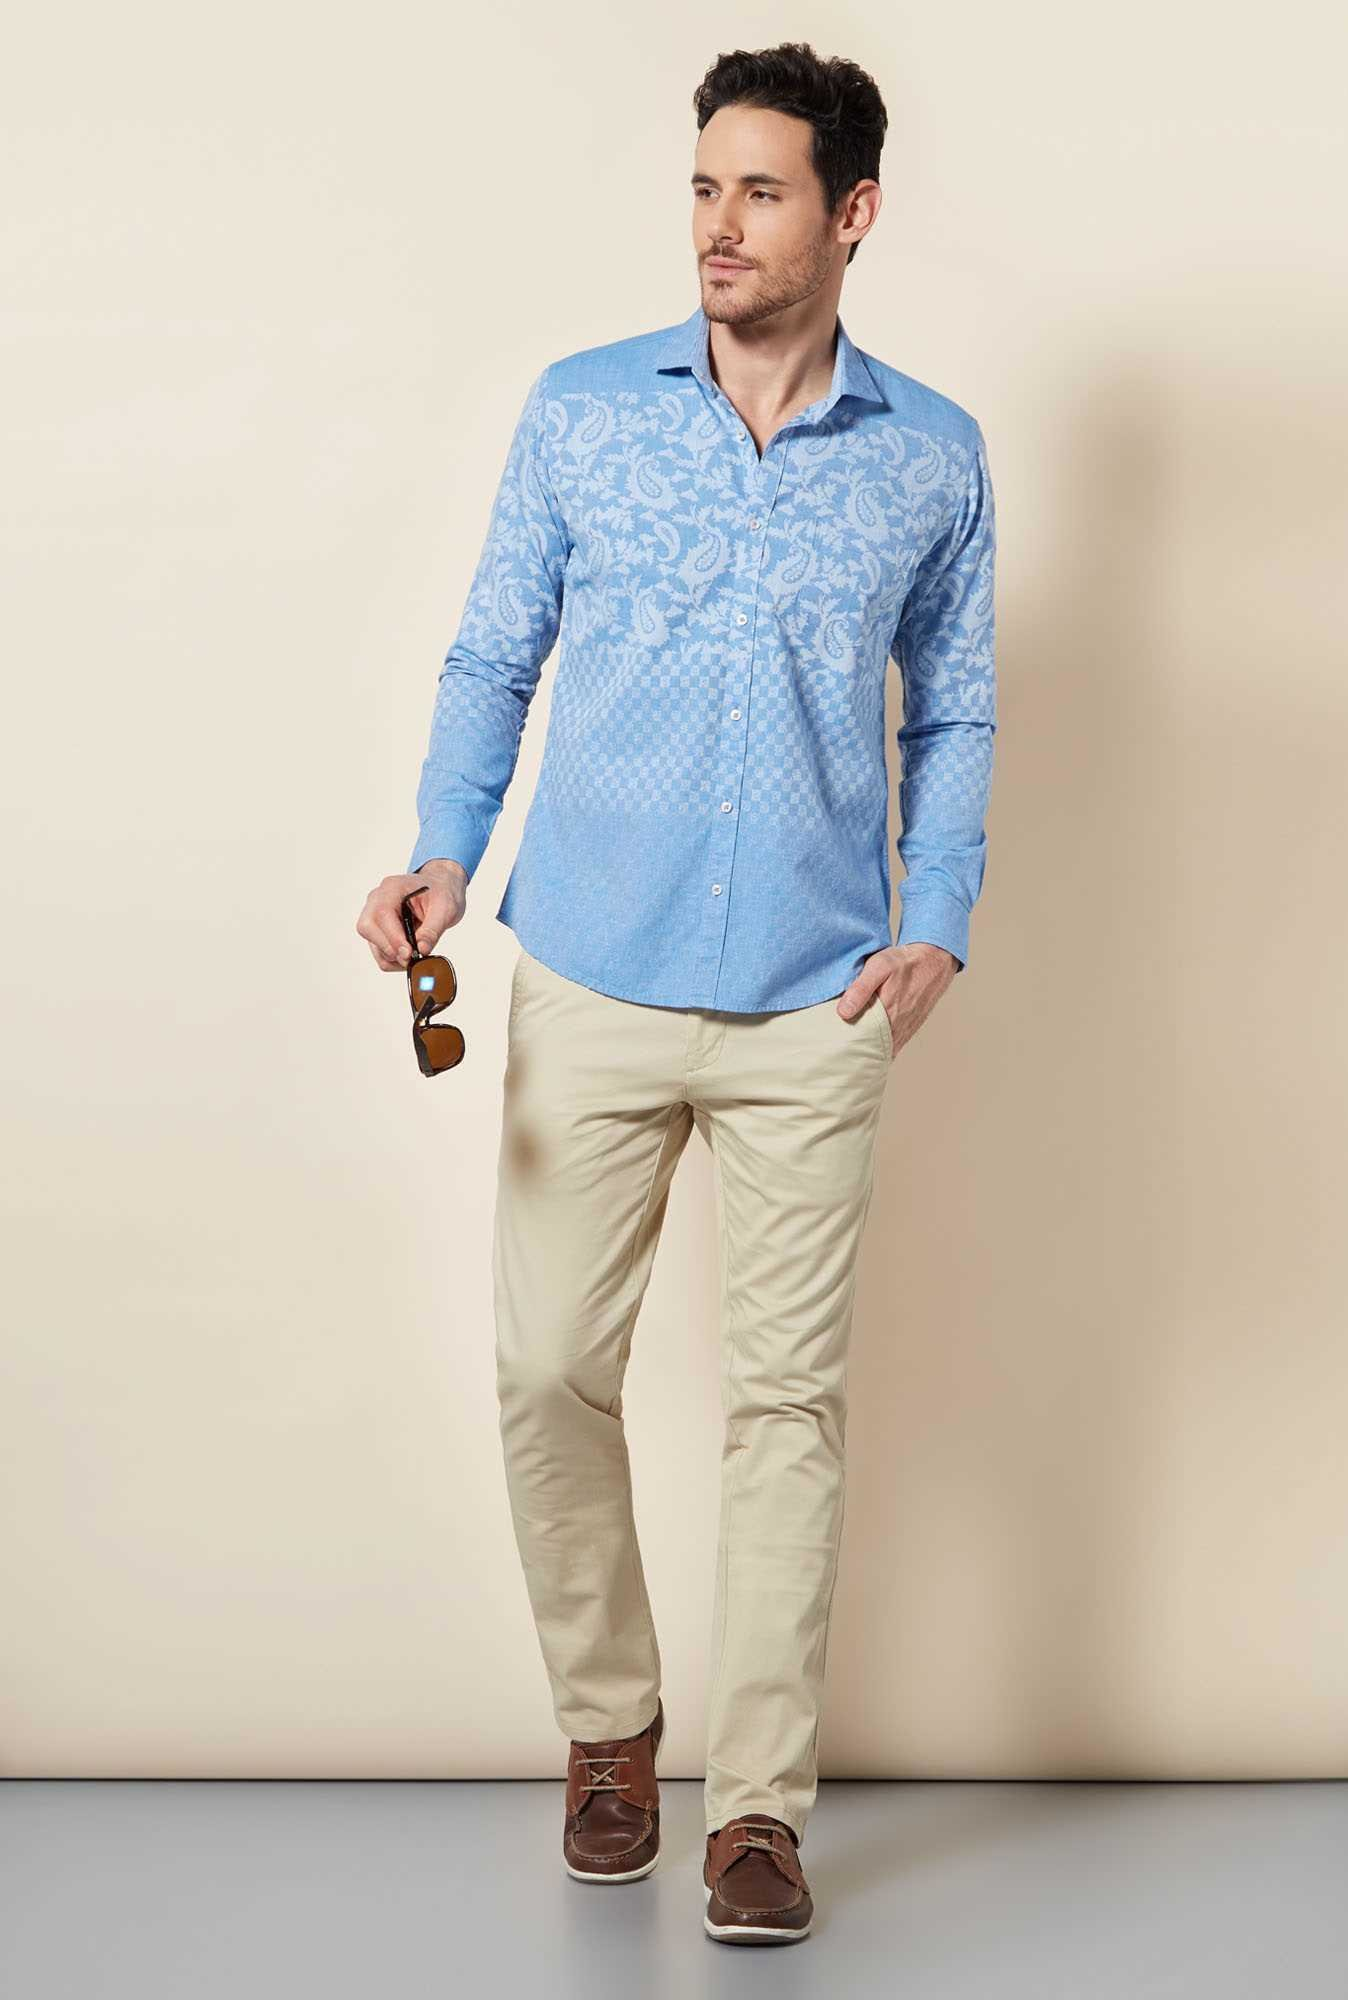 Easies Dusk Blue Paisley Print Shirt